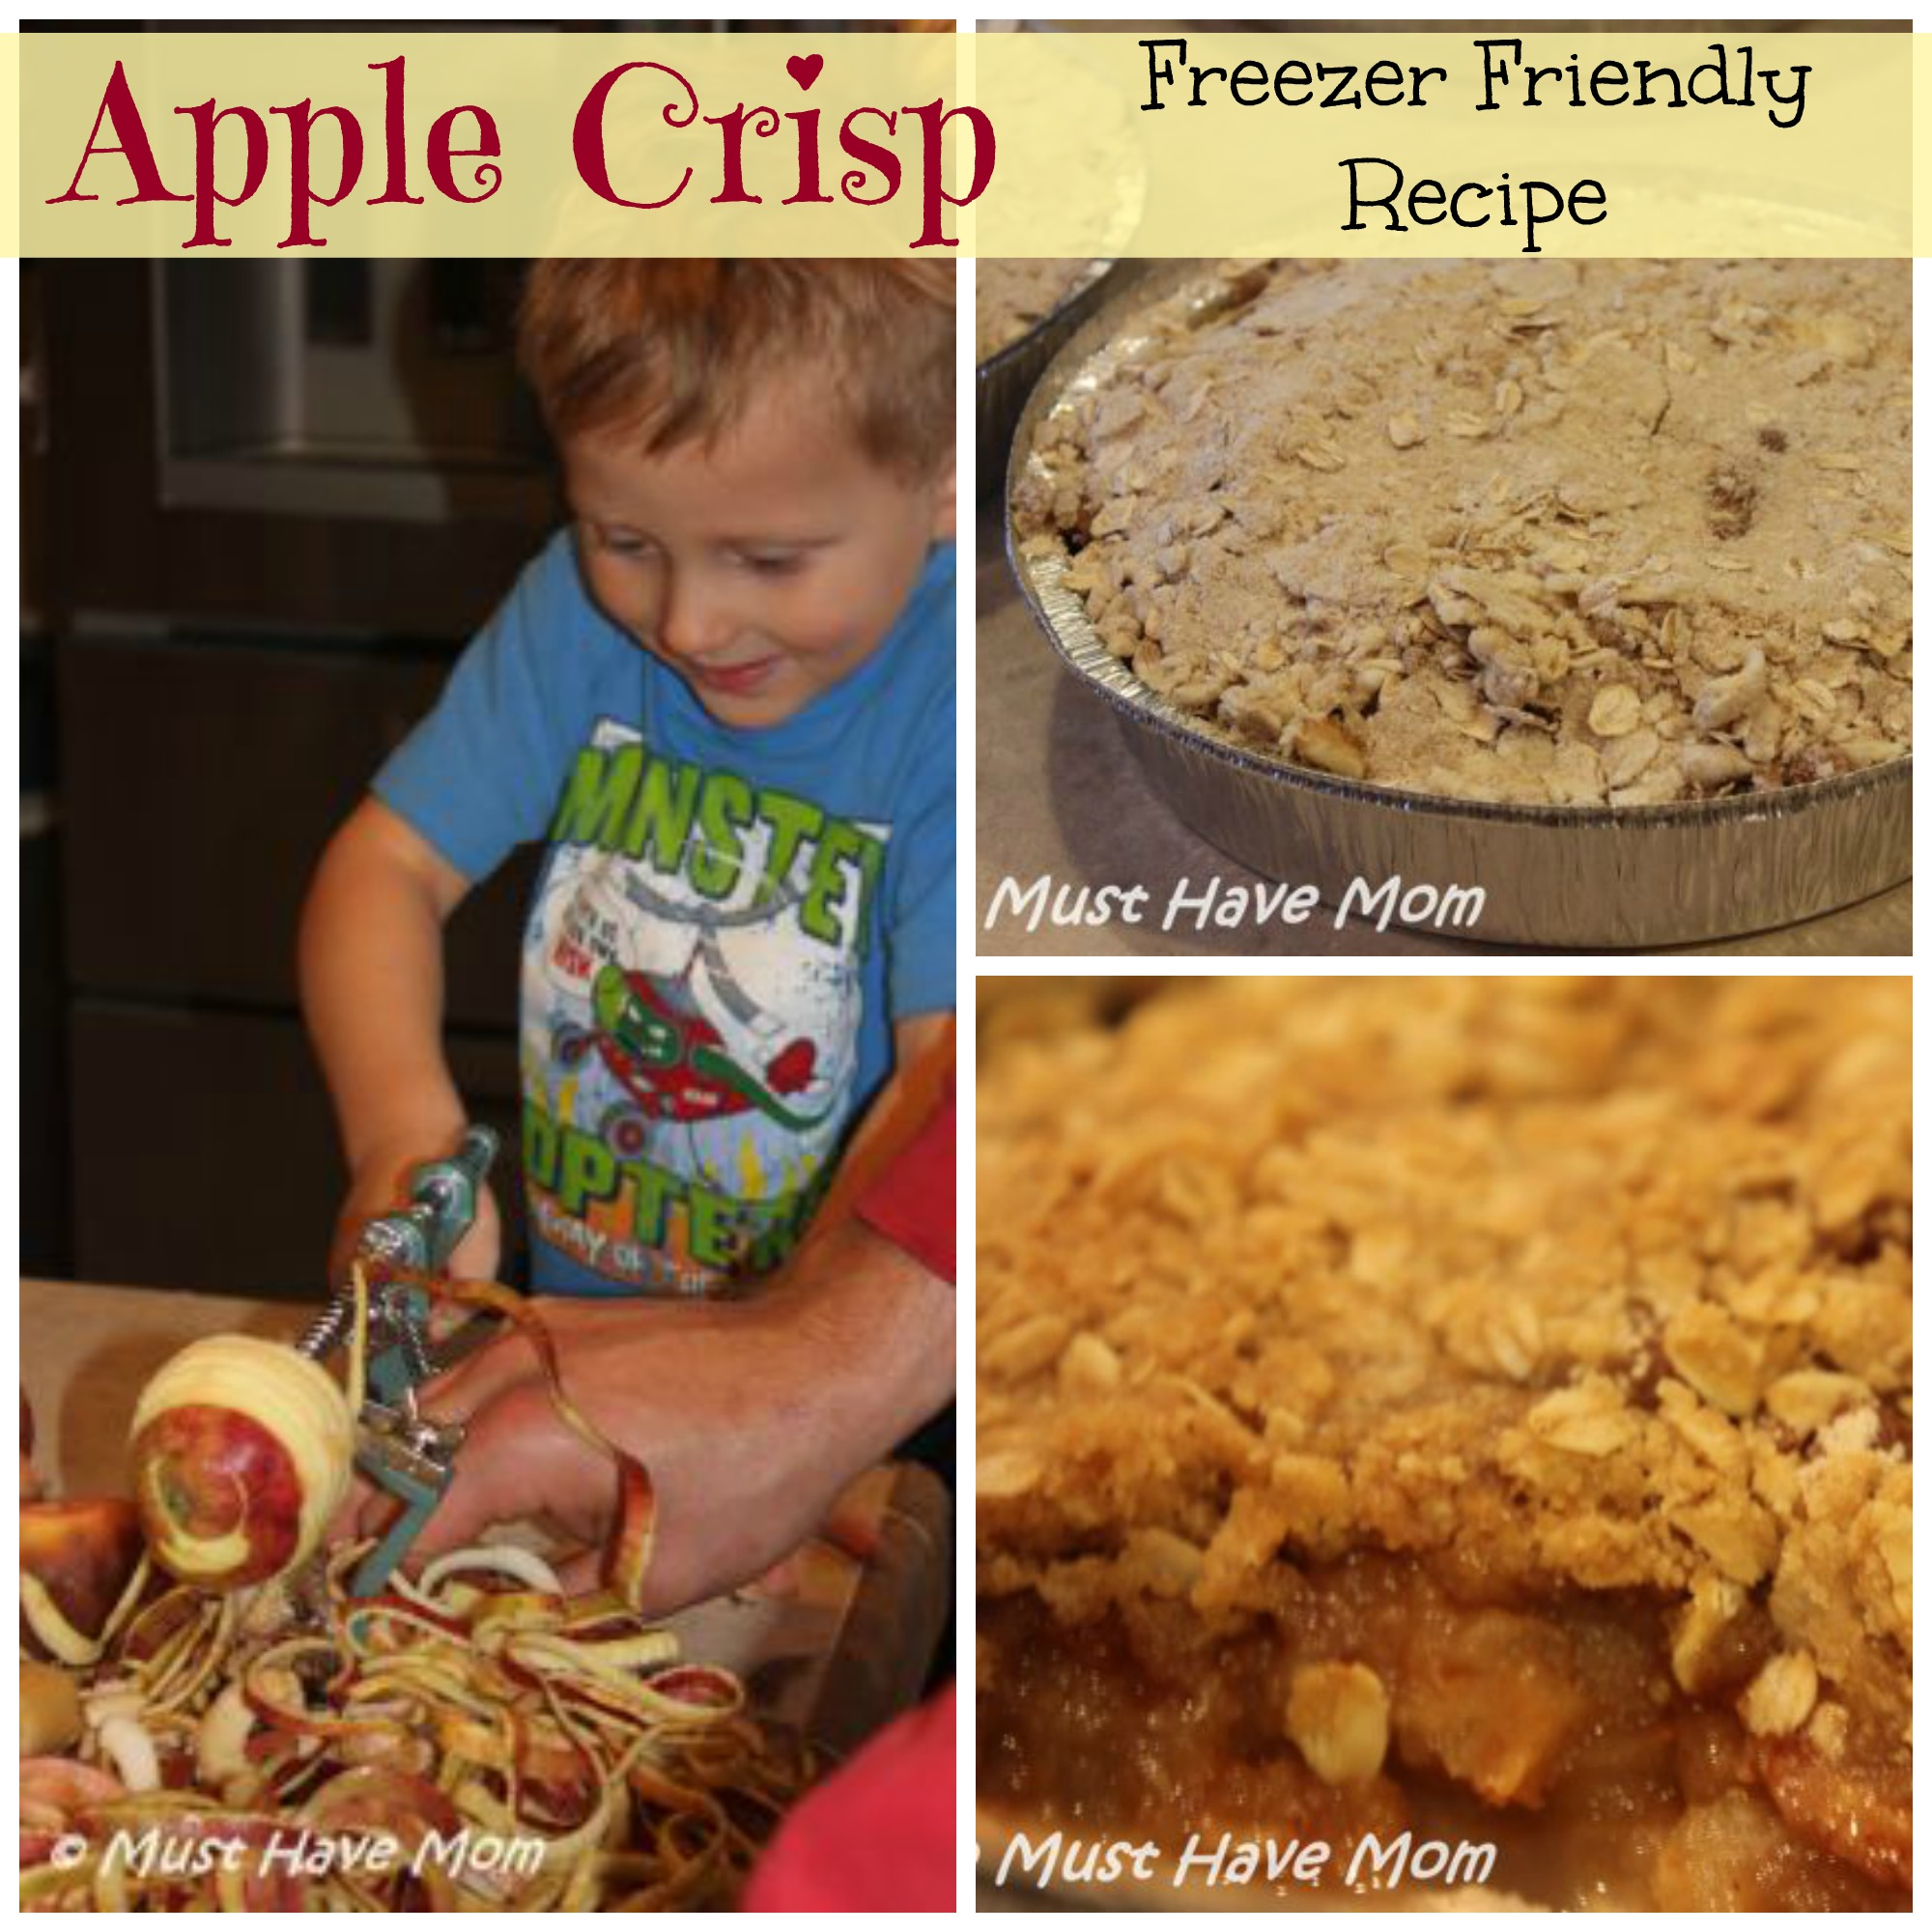 Apple Crisp Freezer Friendly Recipe